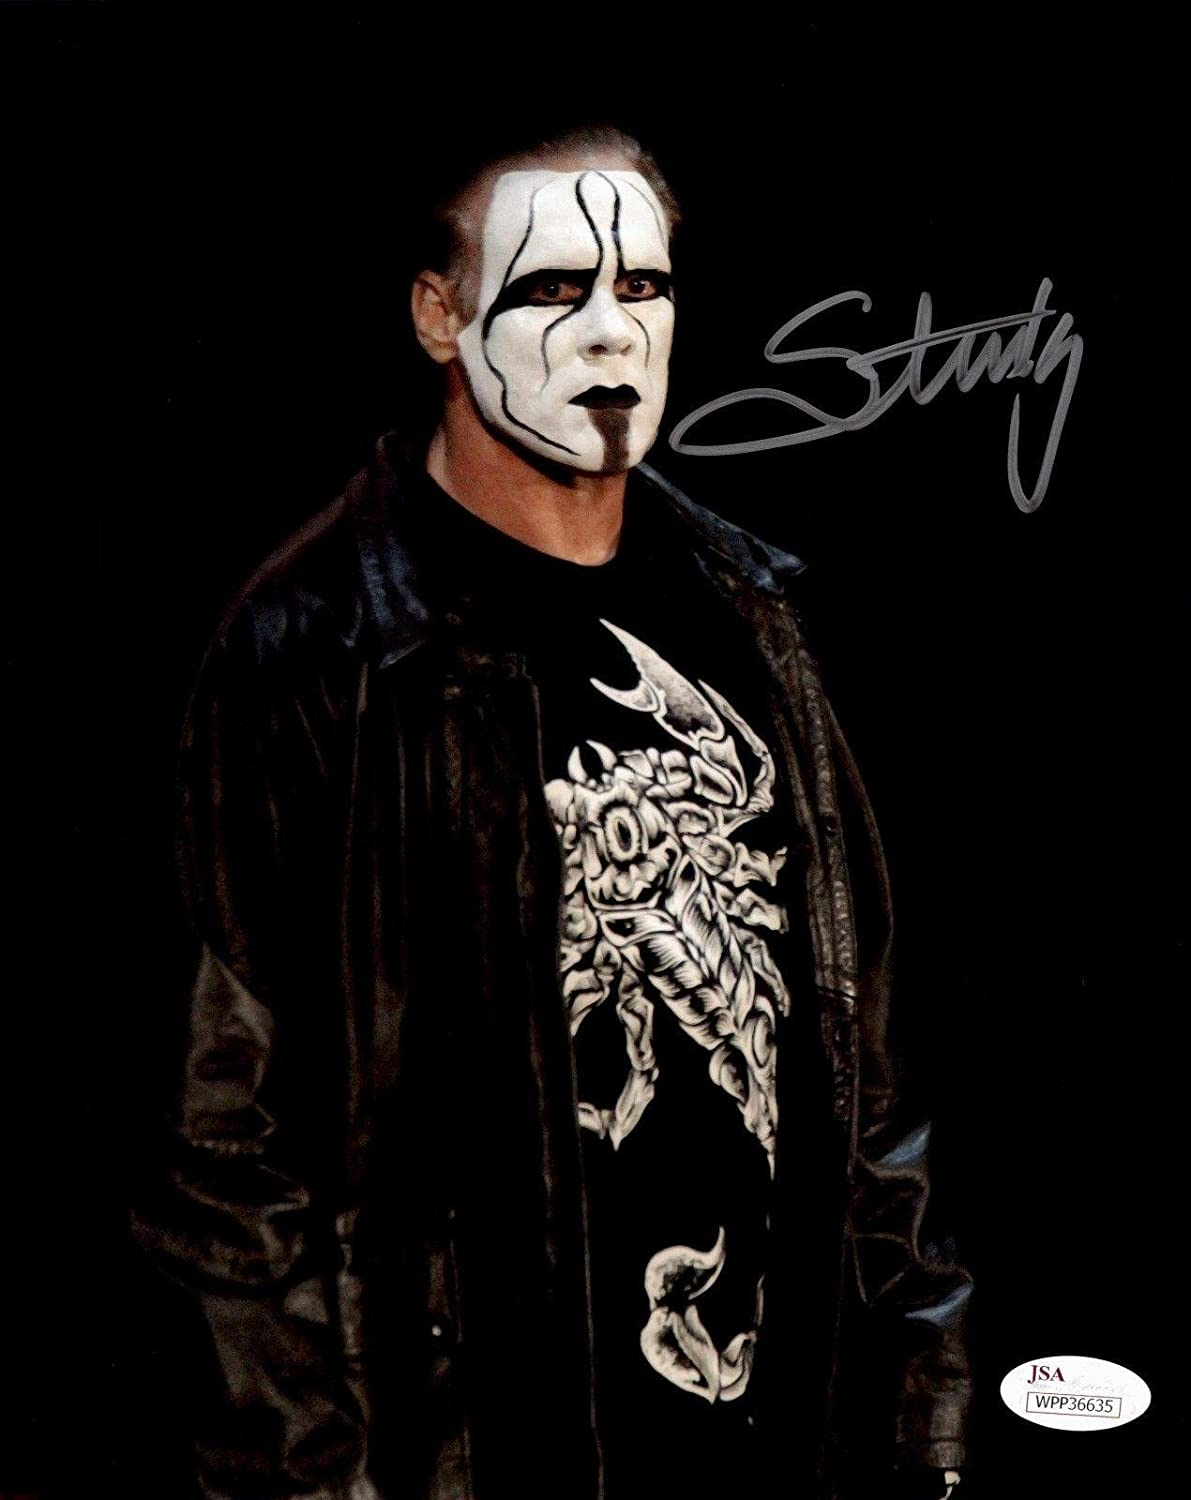 sting tna wwe wcw signed autographed 8x10 photo authenticated 12